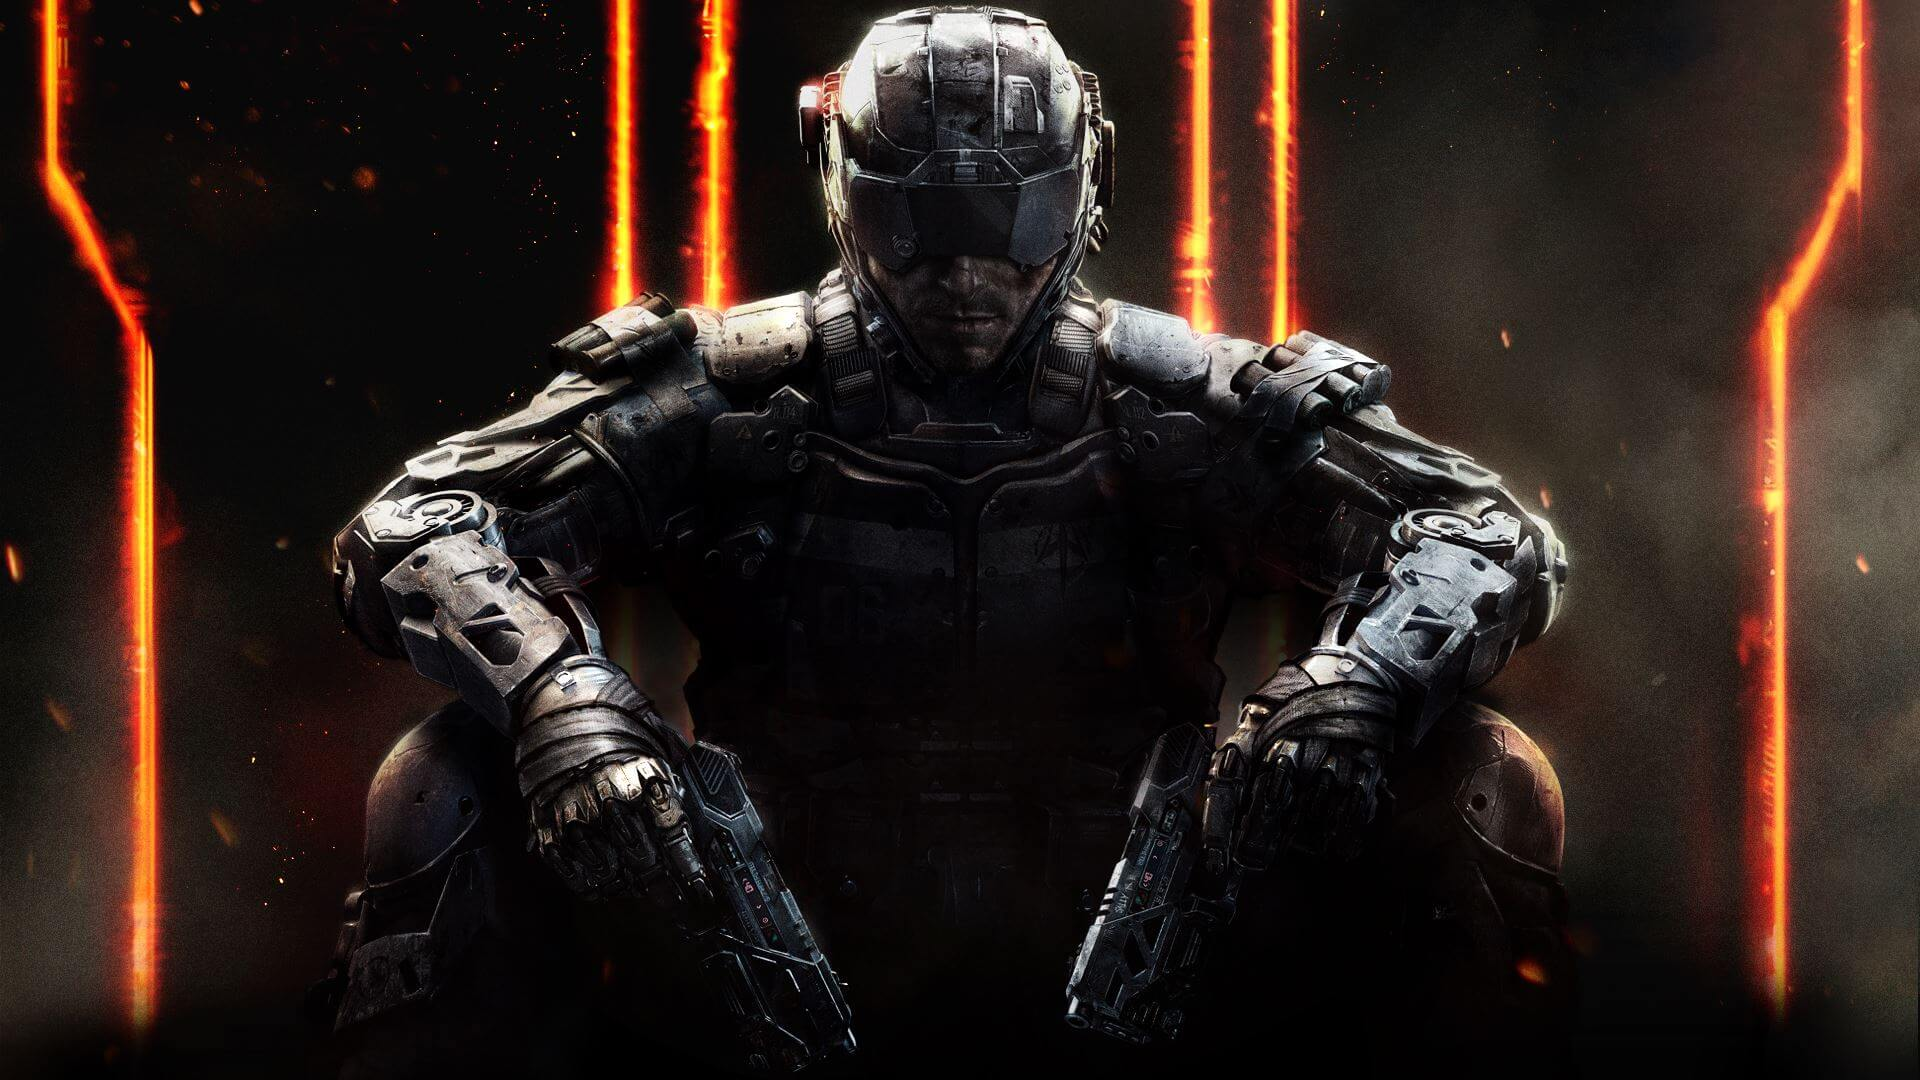 Opinion: Ranking the Call of Duty Multiplayer from Tragic to God-Tier (Part 1)